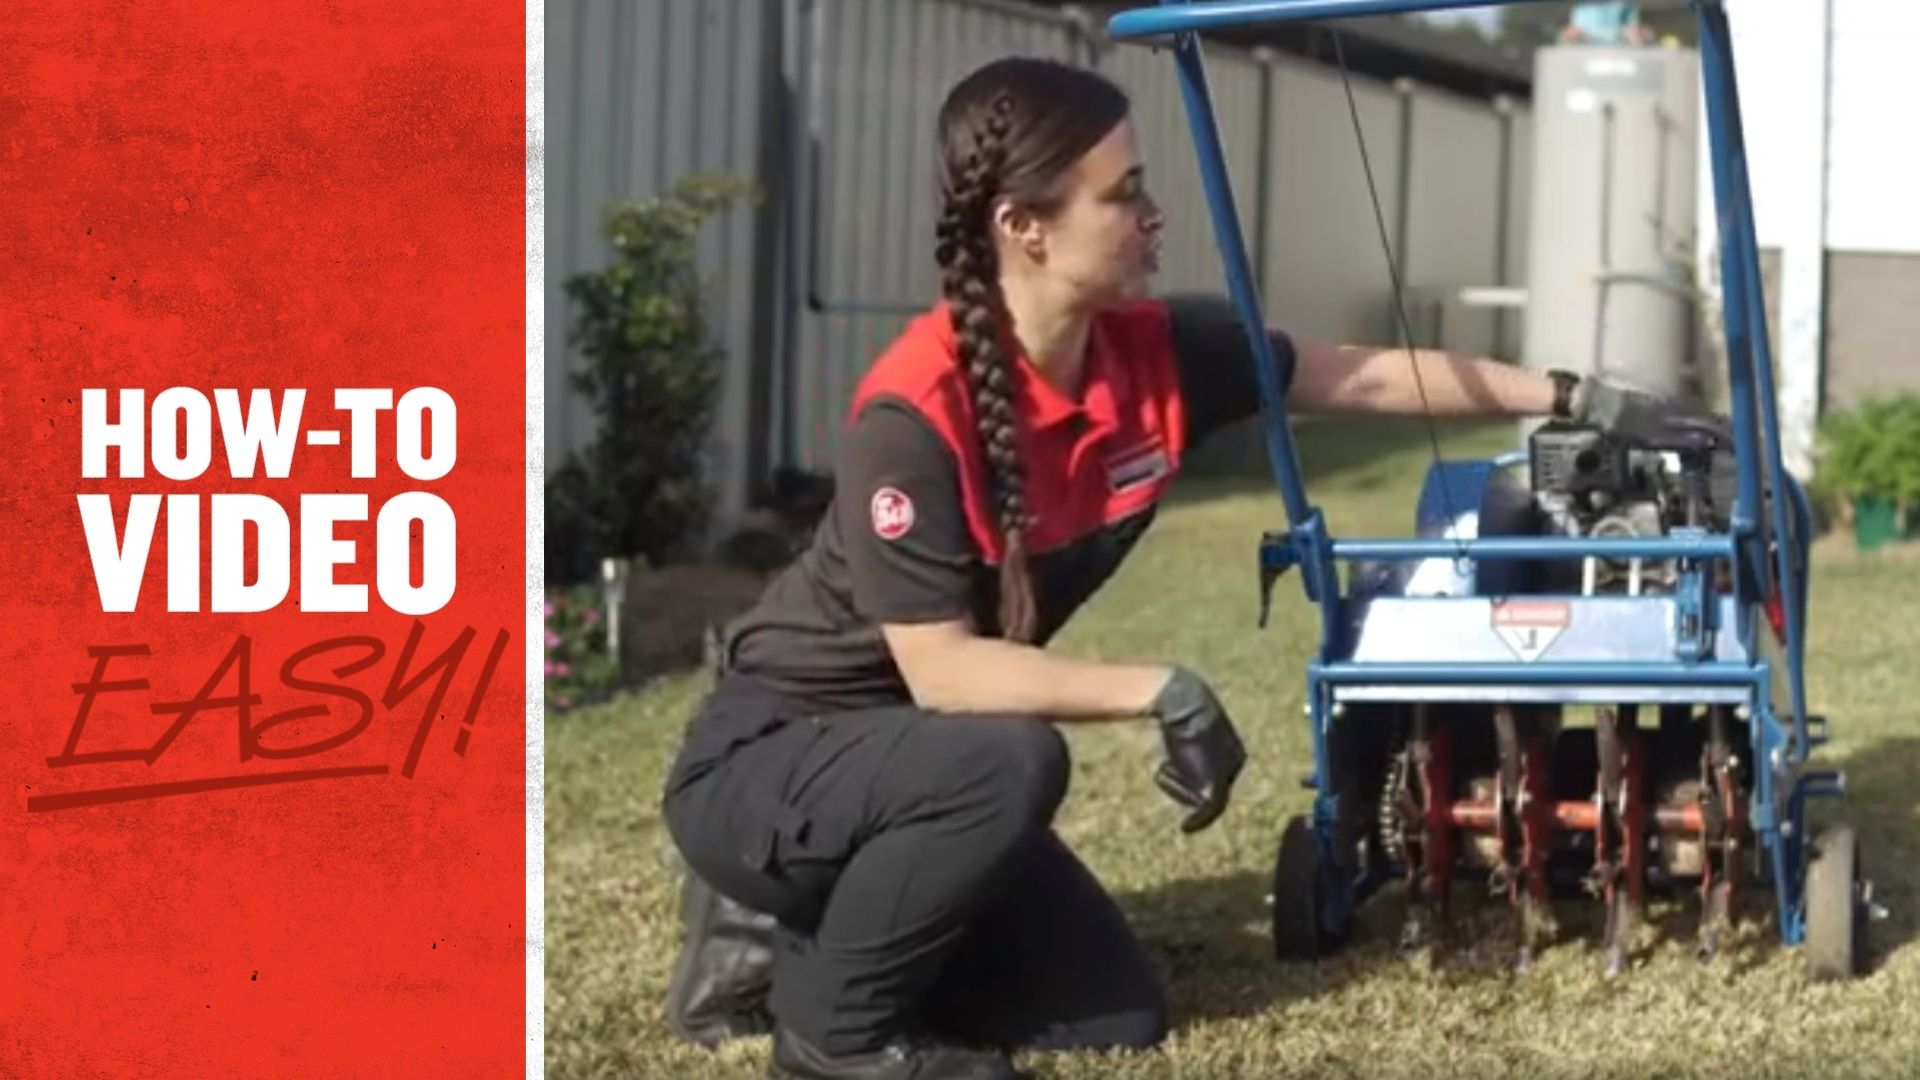 How to use a Lawn Corer